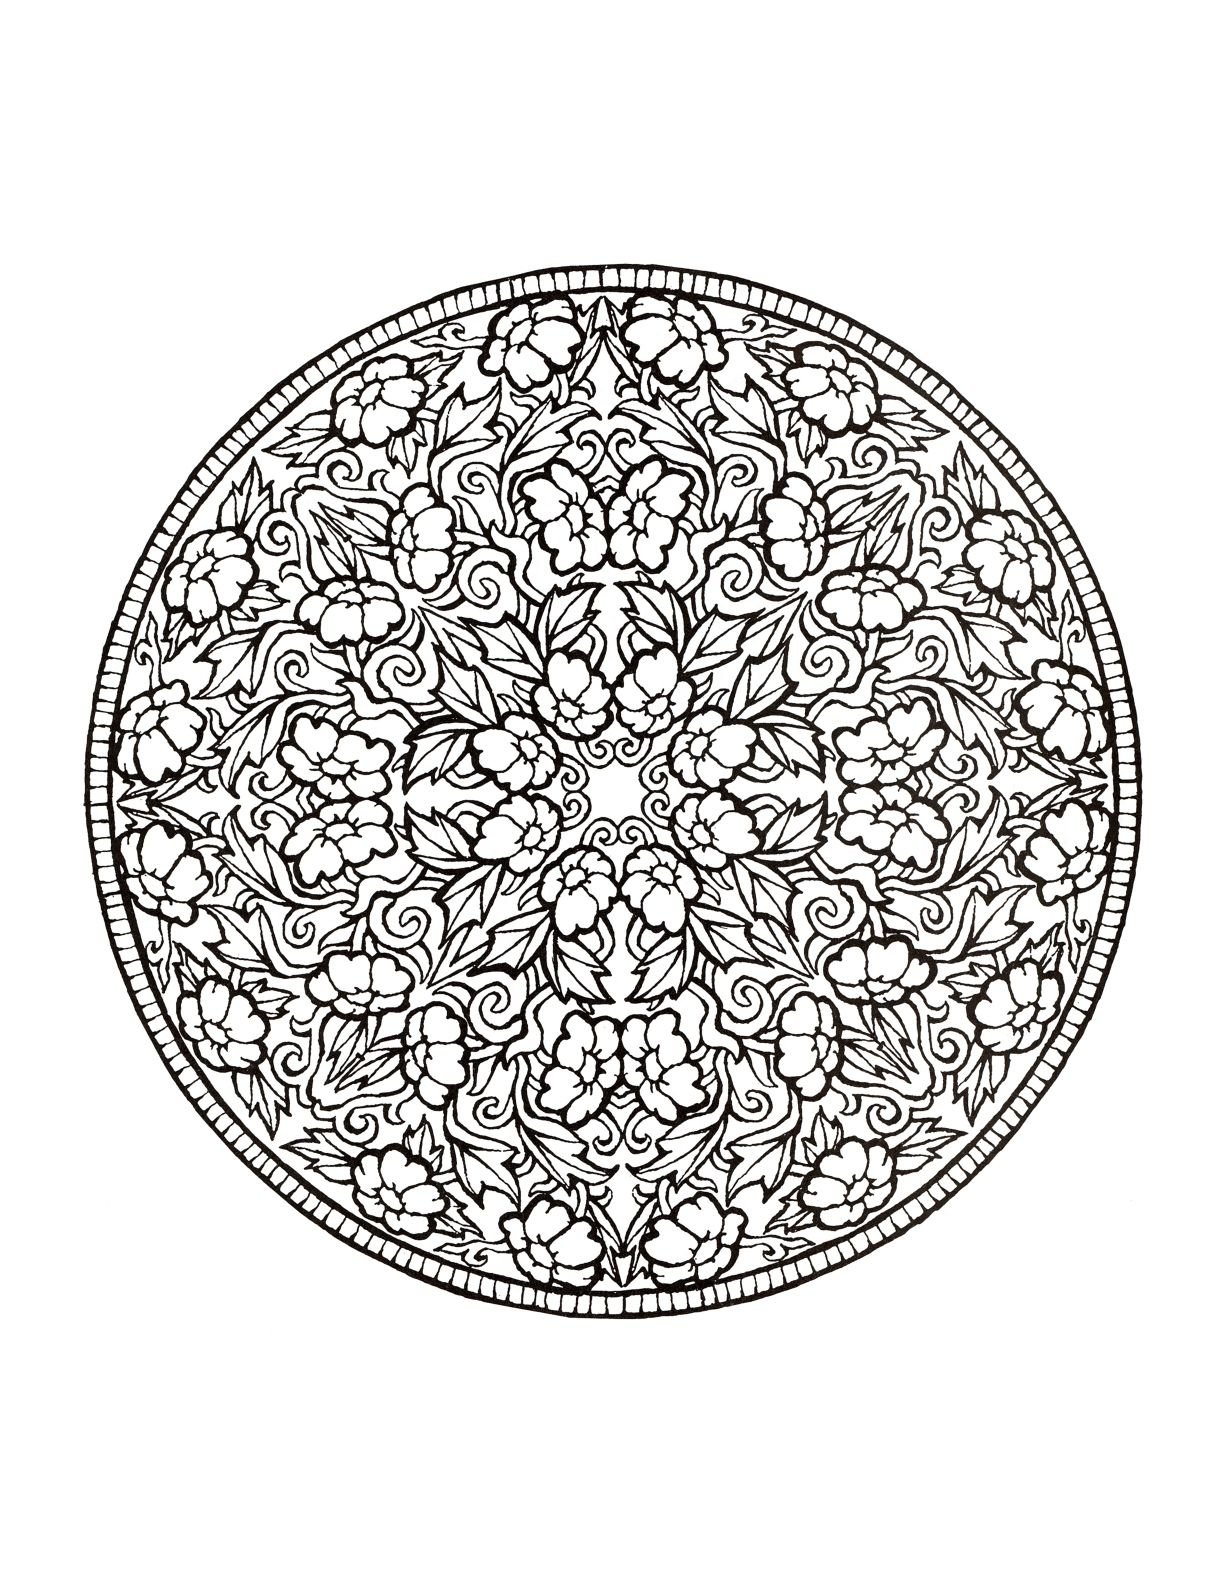 Mystical mandala coloring pages - Find This Pin And More On Color Me Beautiful Flowers Mystical Mandala Coloring Pages